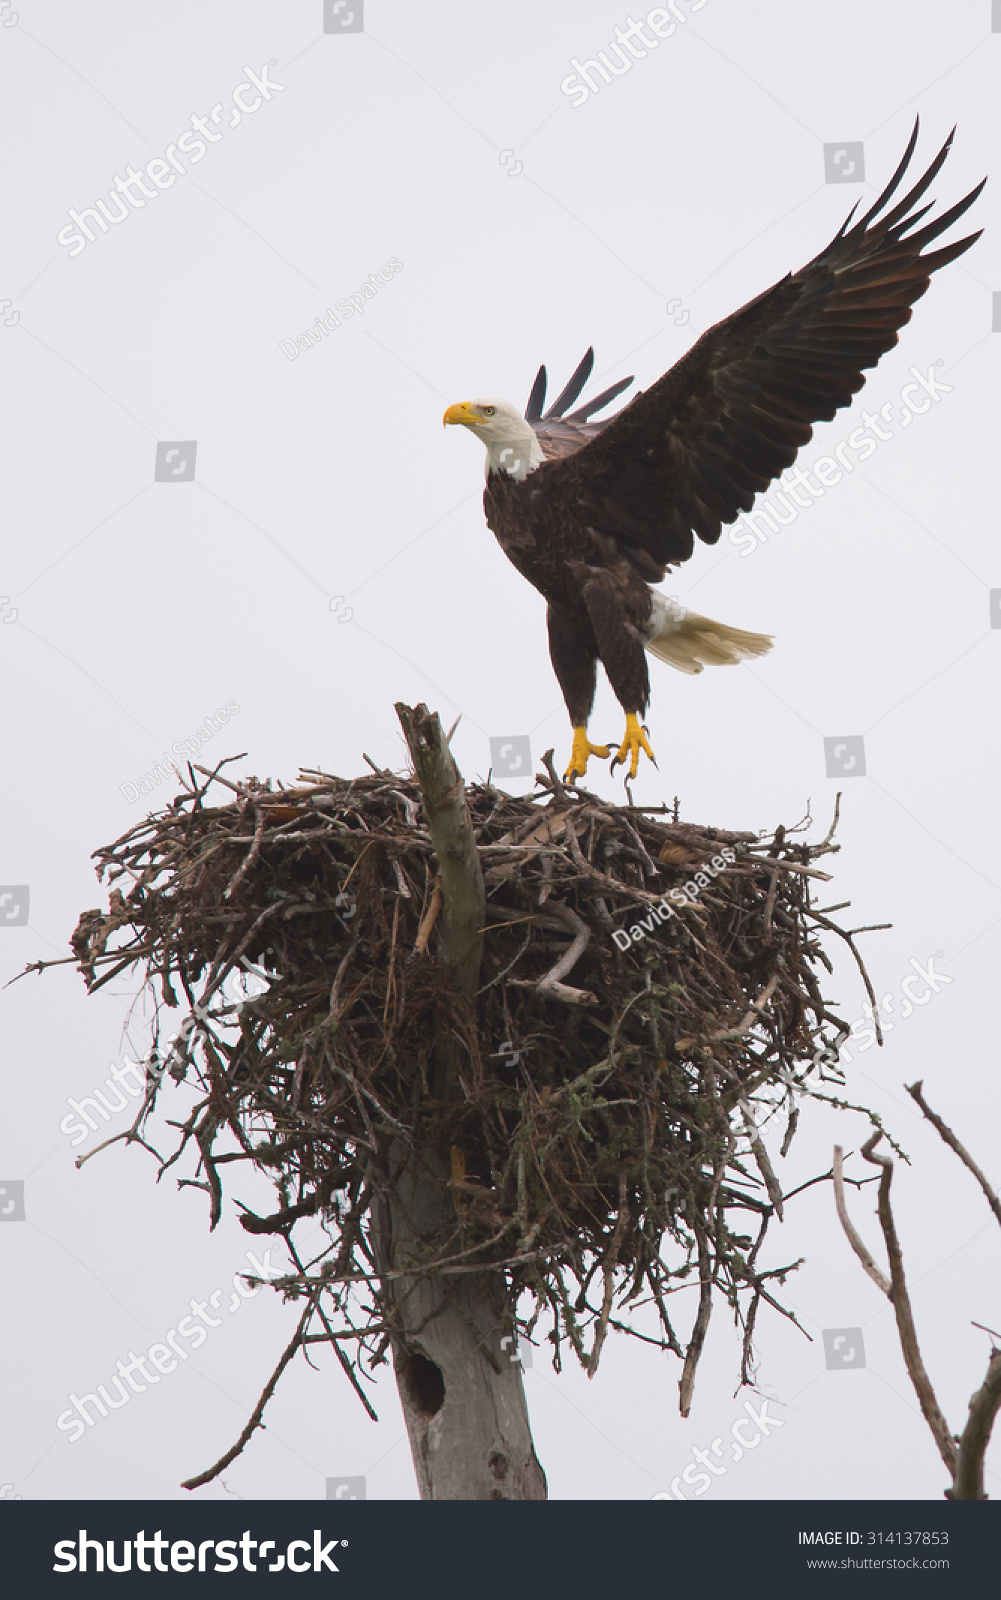 Bald Eagle Stock Photo from Shutterstock